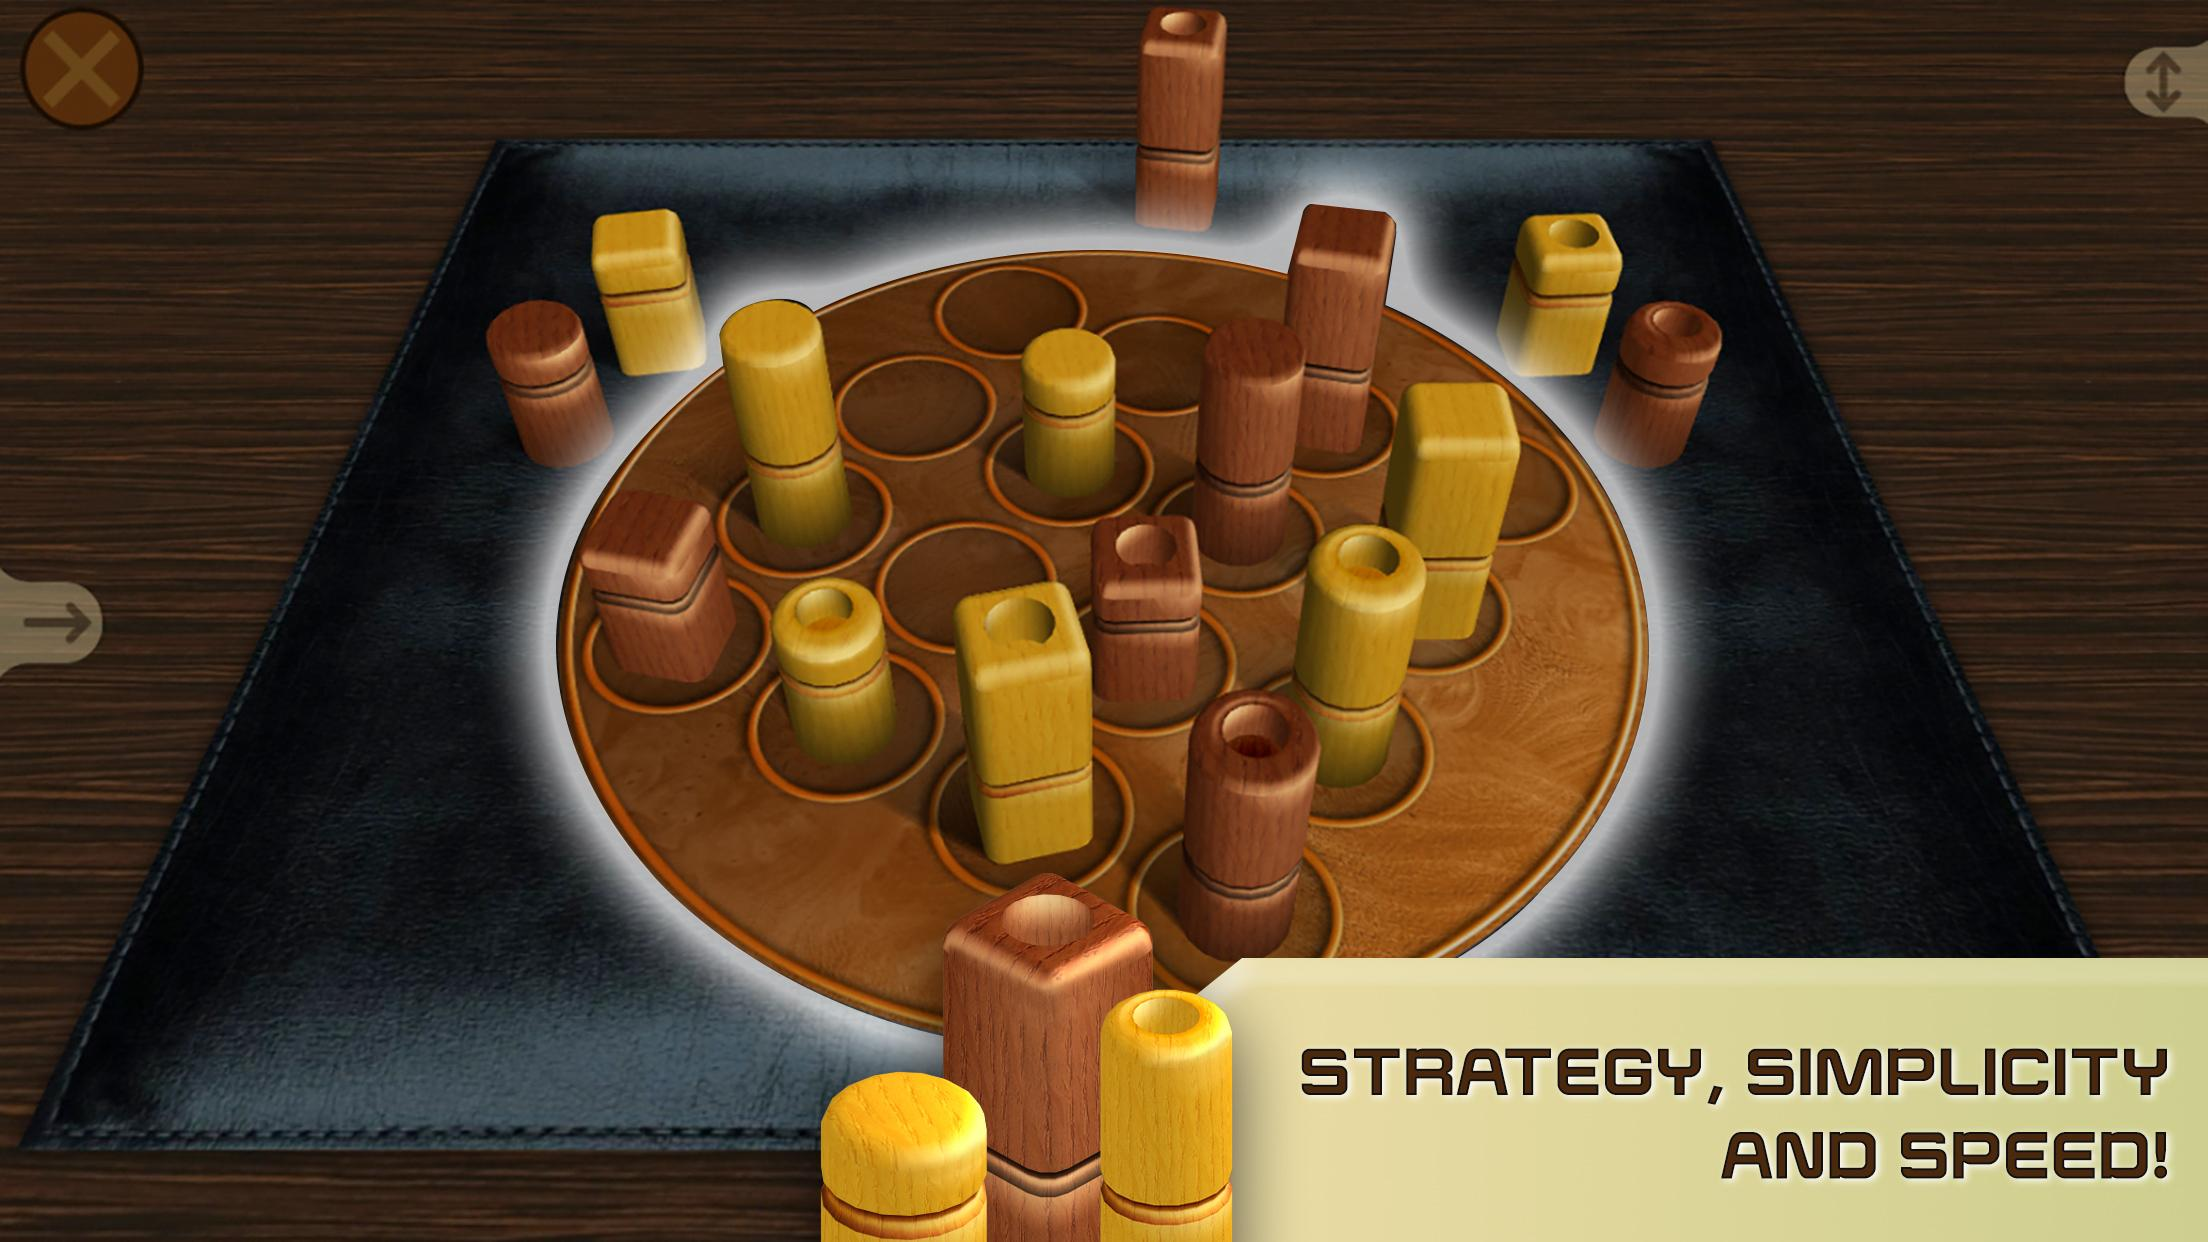 Snatch victory from your opponents' hands now that Quarto has dropped on iOS and Android